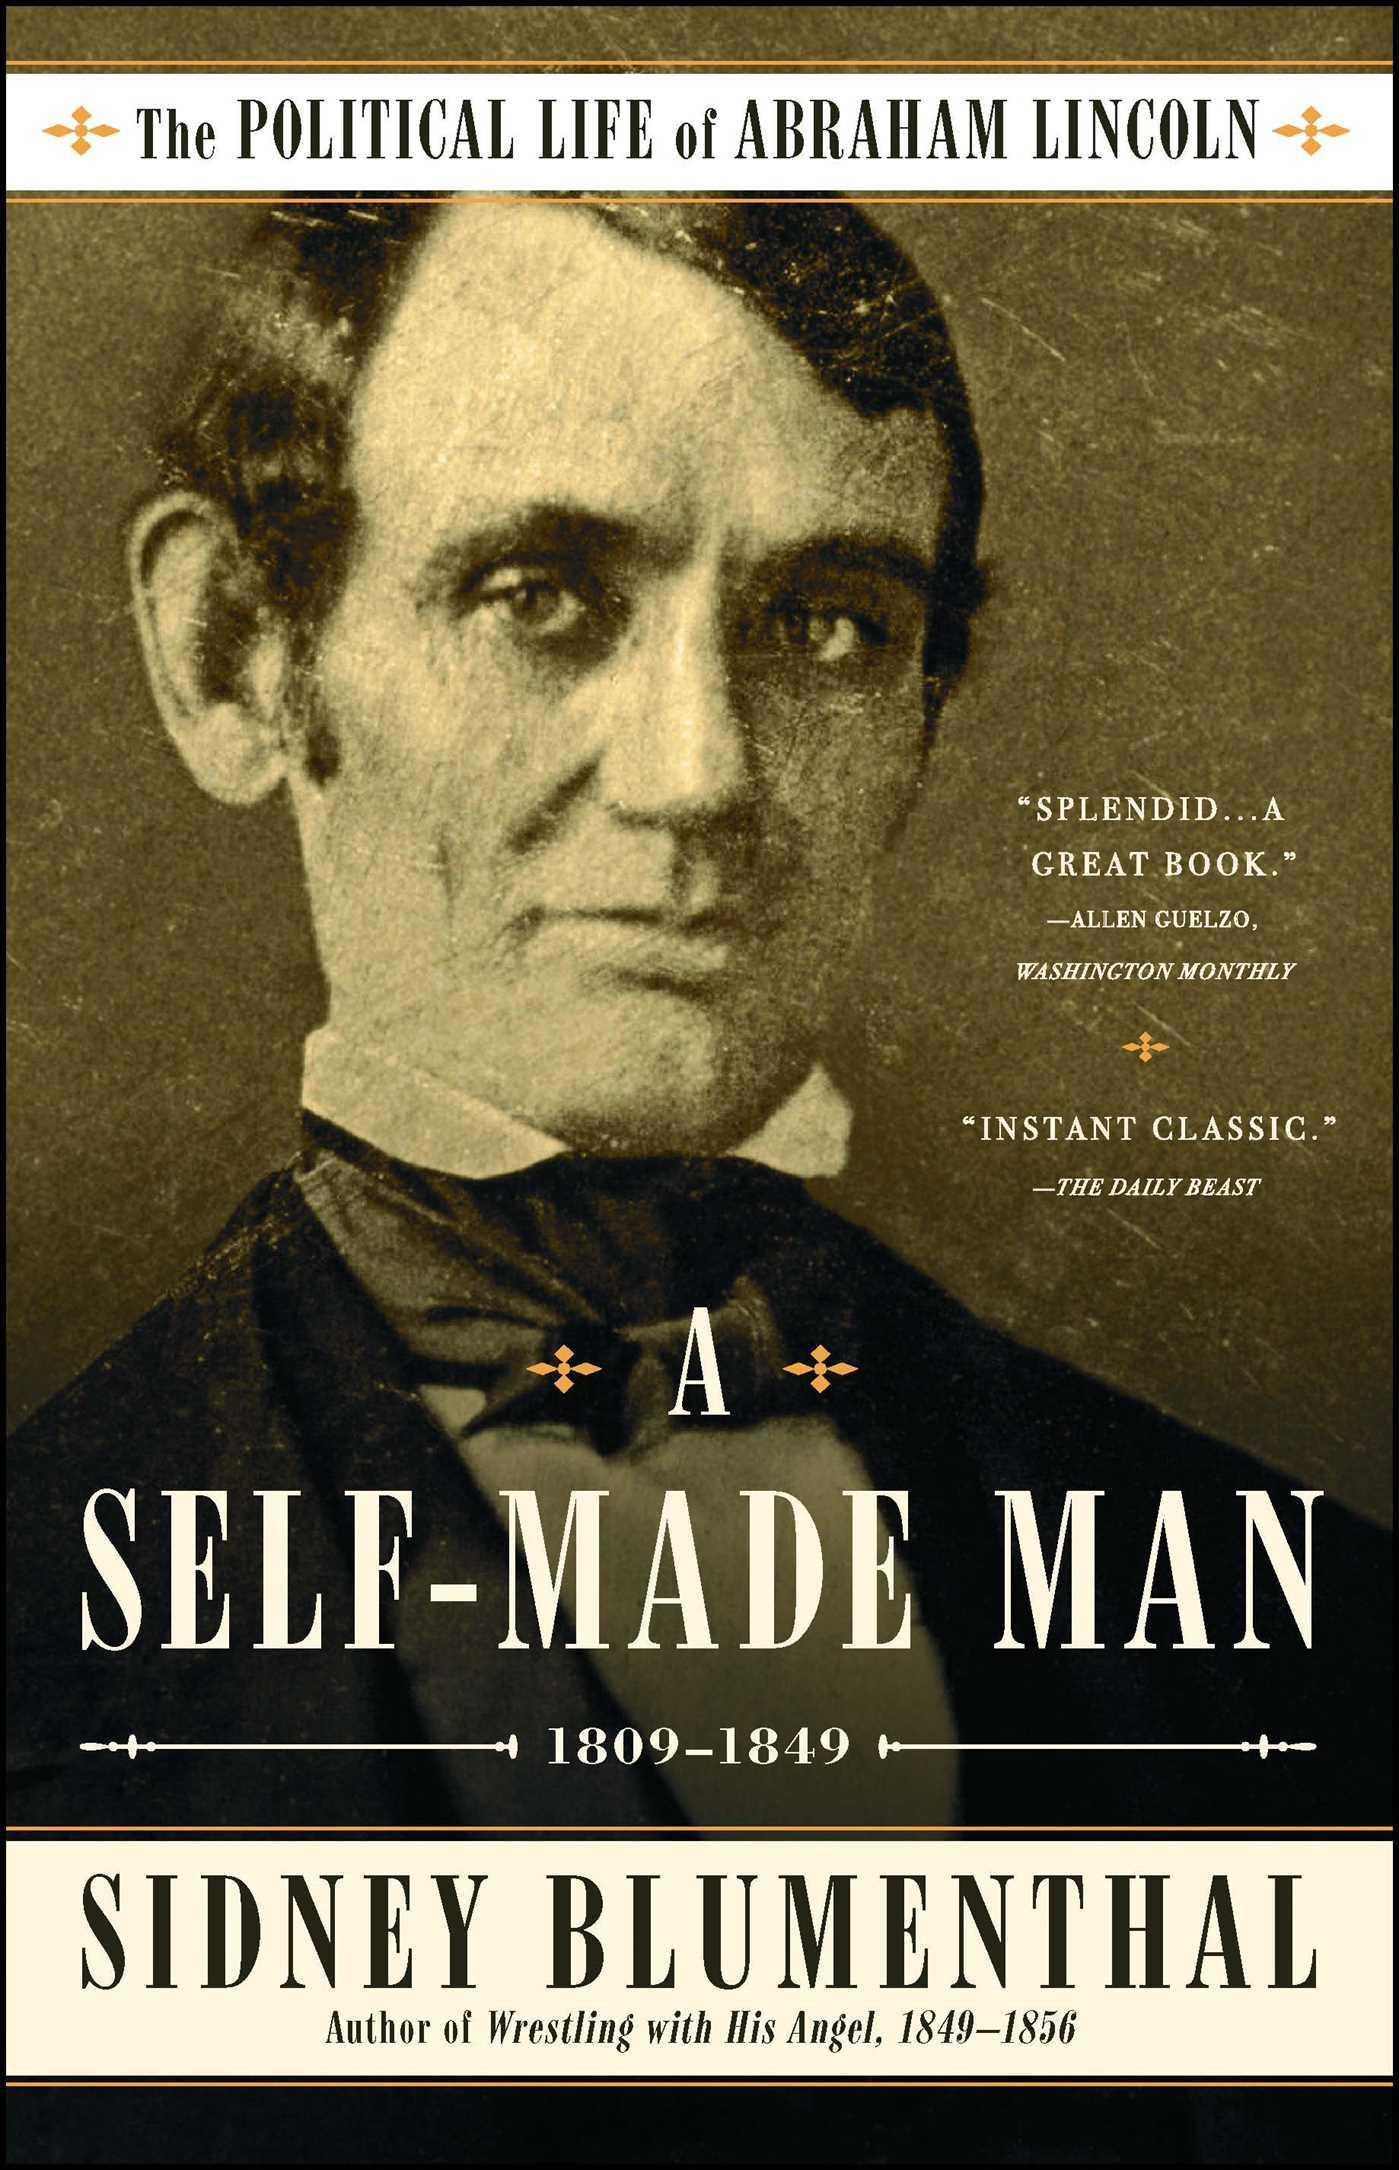 man official blumenthal the sidney hr books a book made publisher abraham life of political lincoln self by